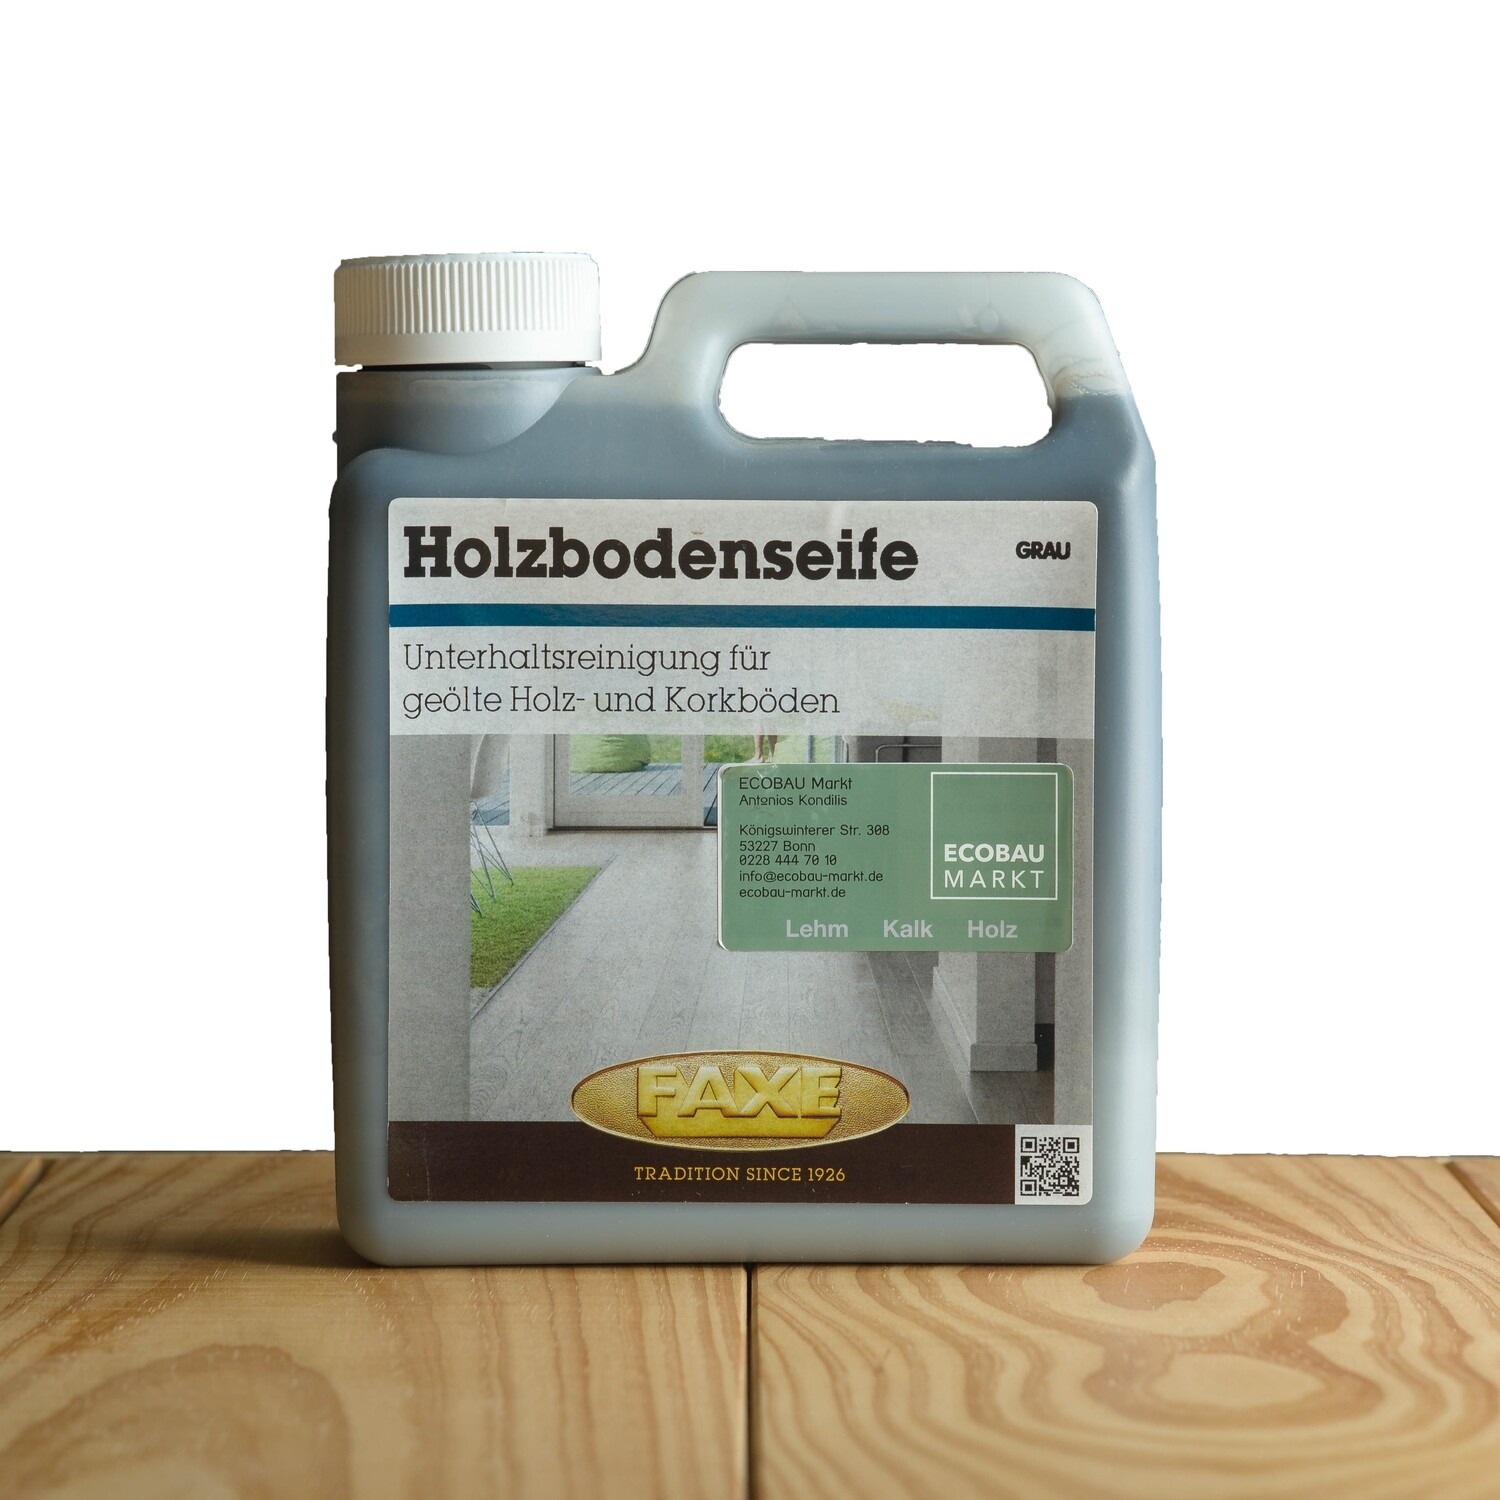 Faxe Holzbodenseife grau 1,0 l